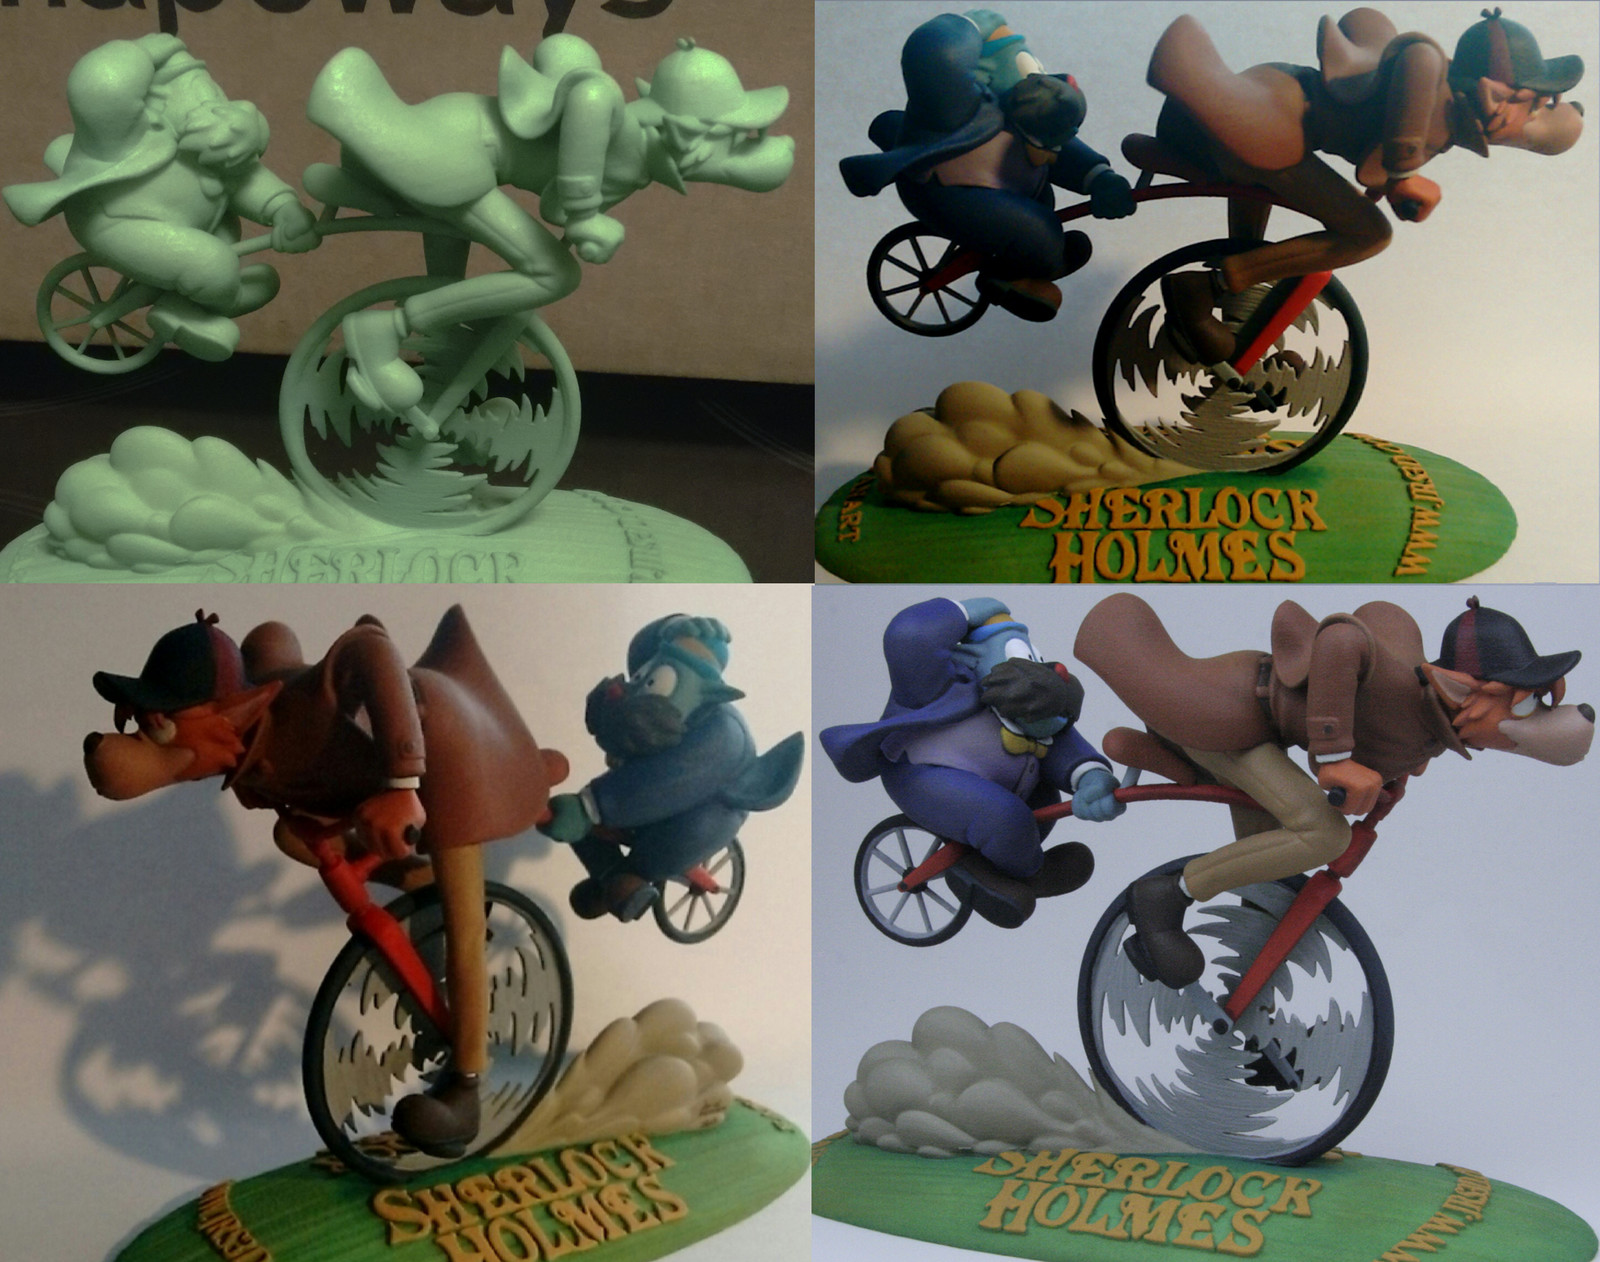 3D print in Shapeways and painted by David Romero